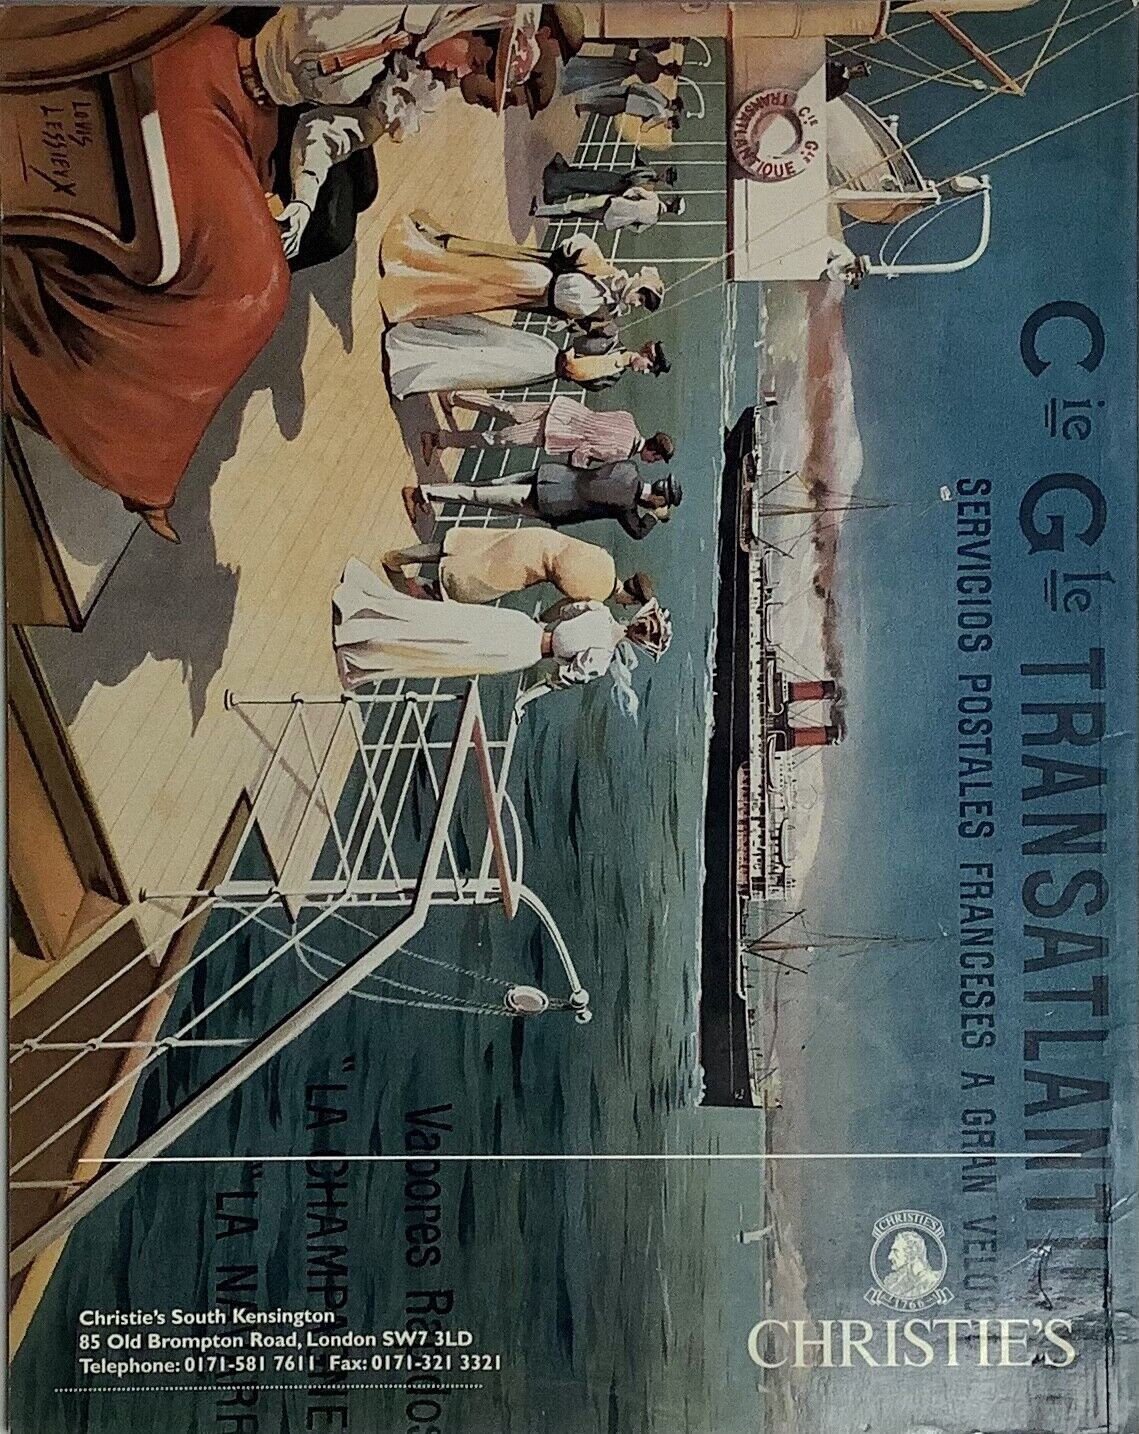 Original Christies Vintage Posters Auction Catalog May 1996